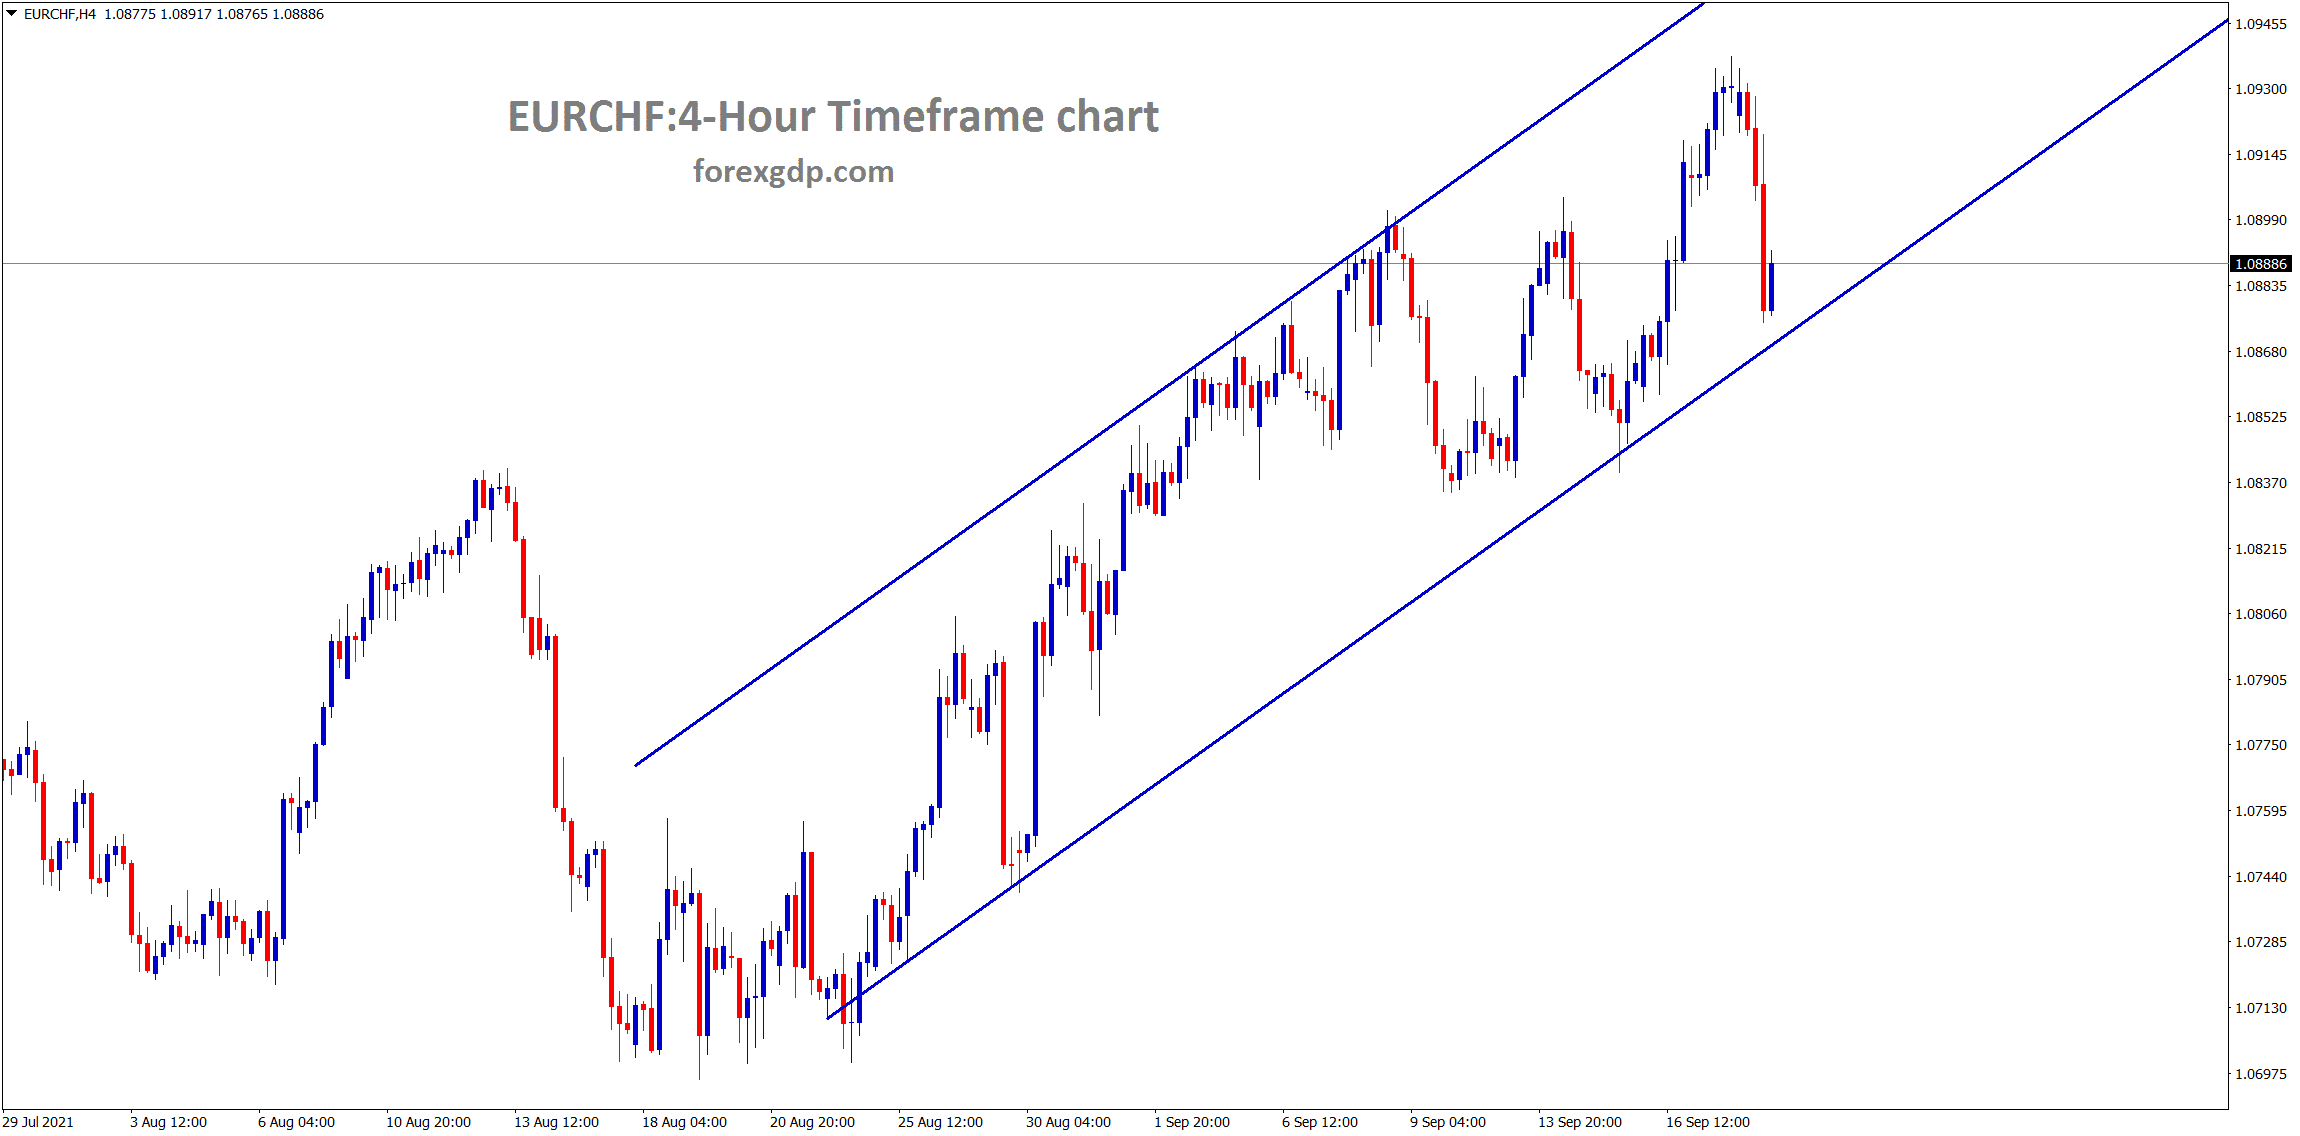 EURCHF is moving in an uptrend line in the hourly timeframe